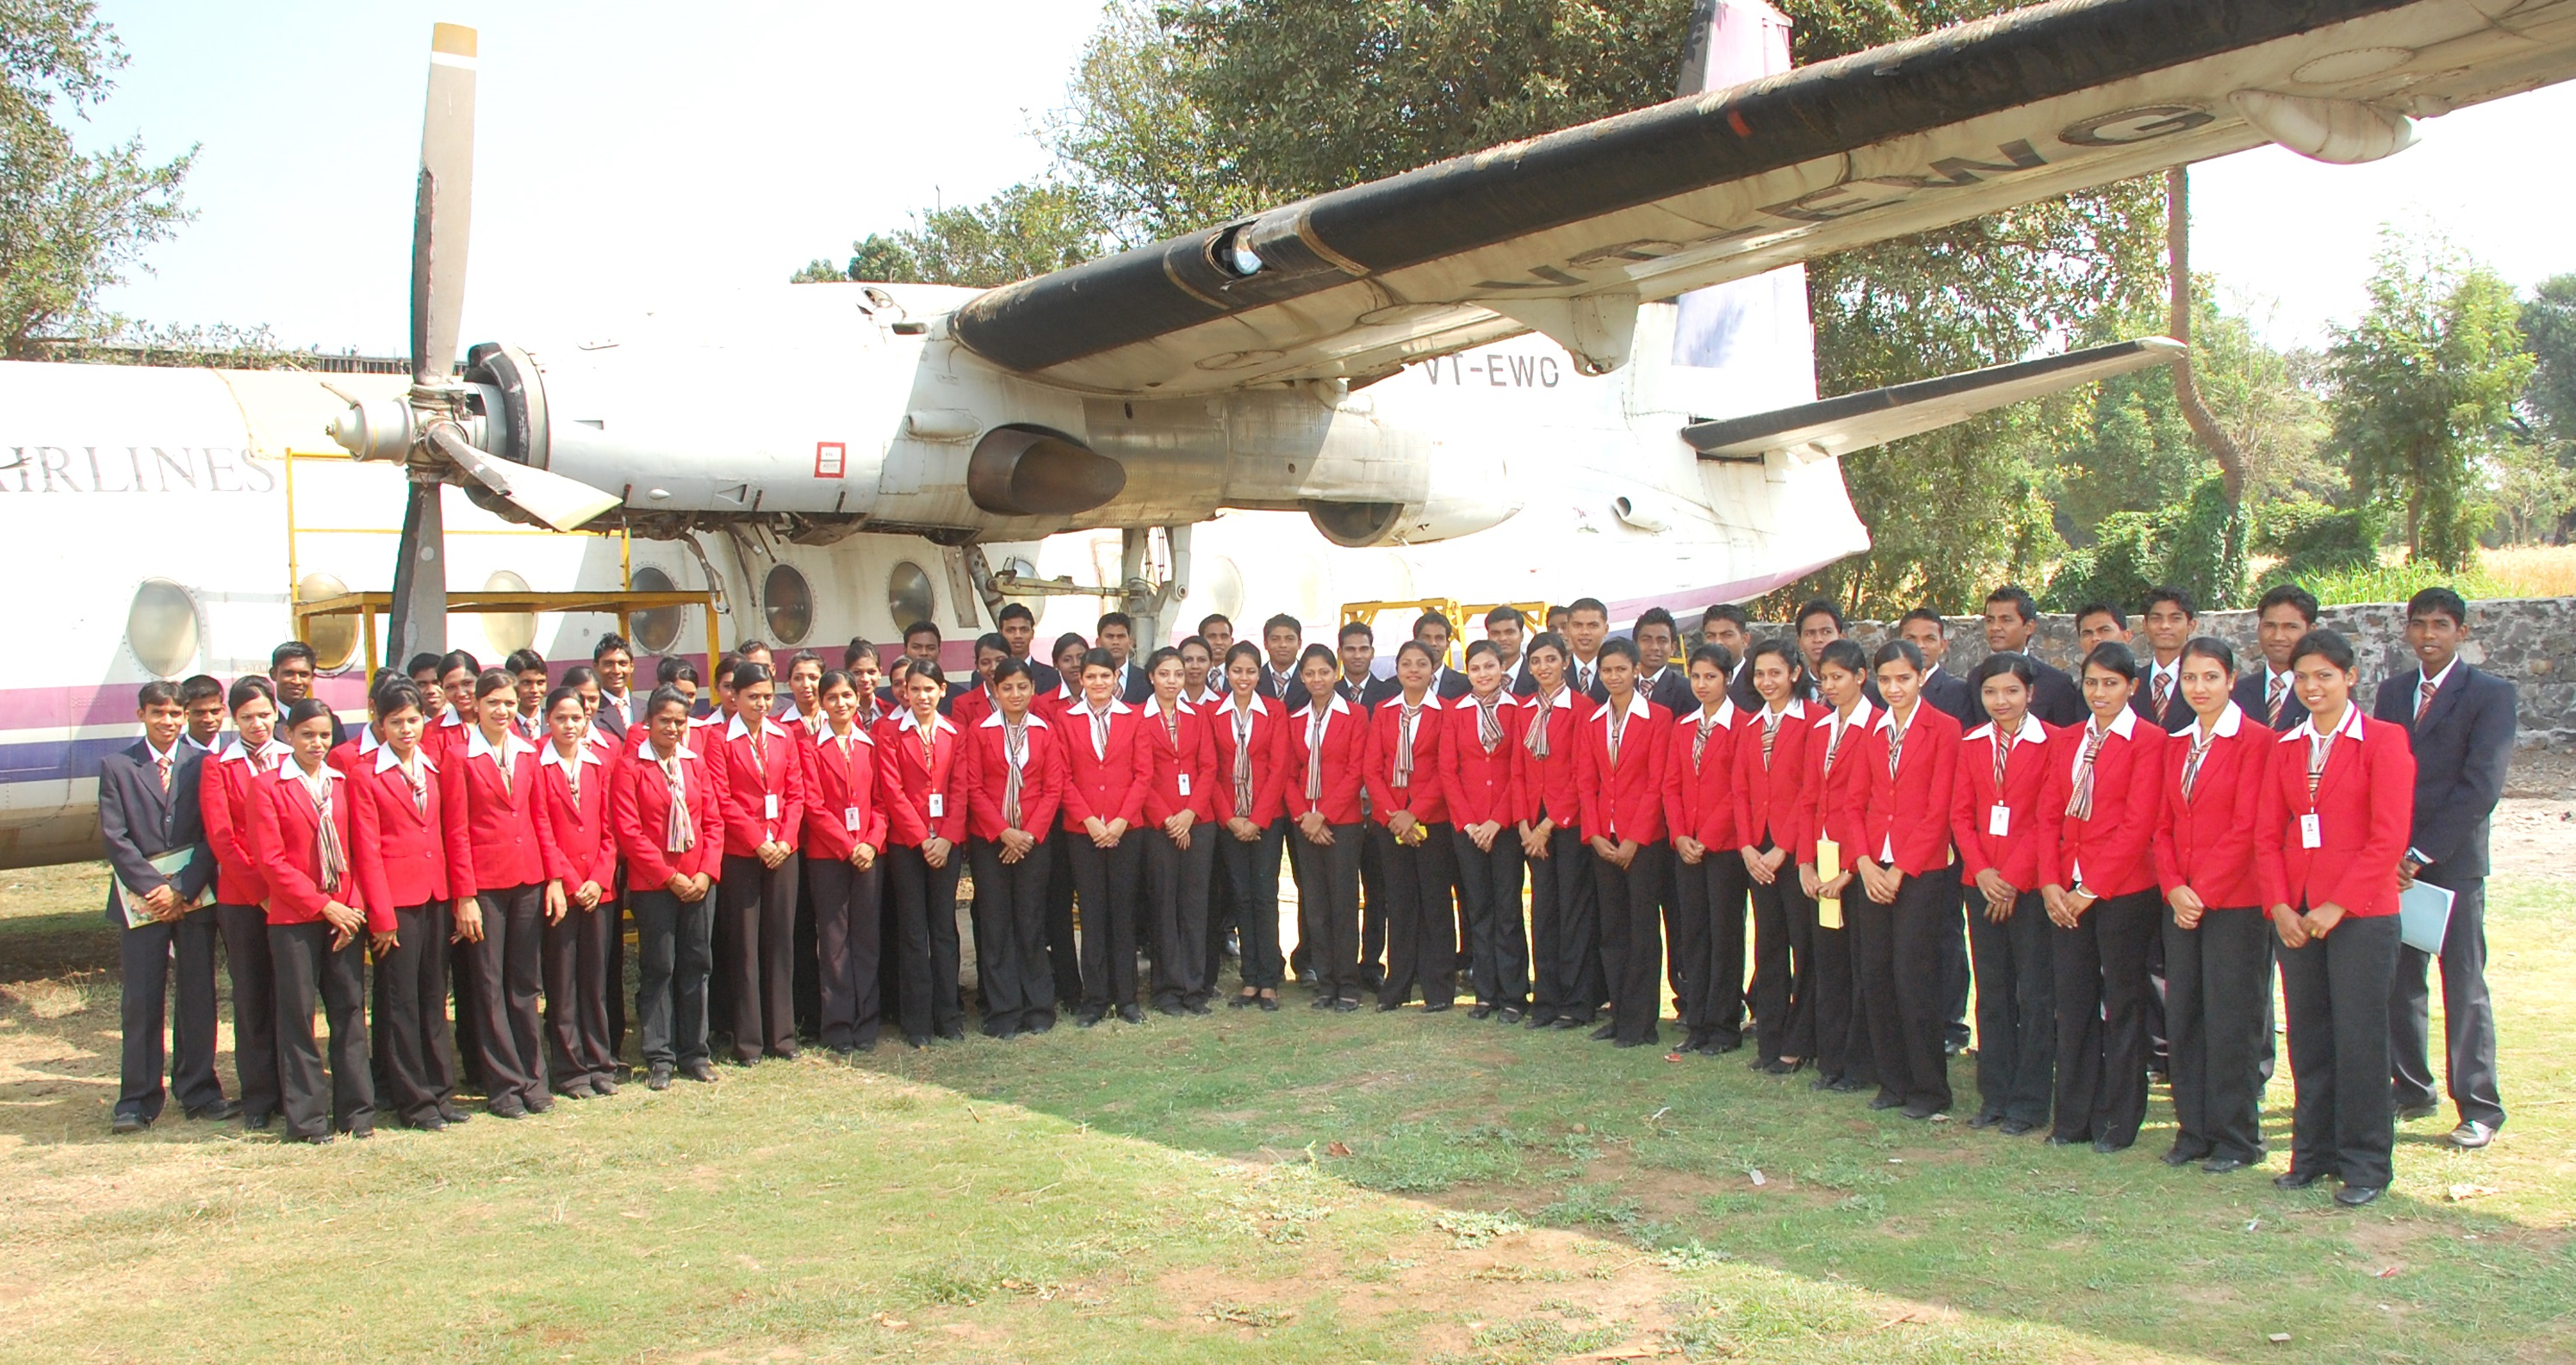 Wingsss College of Aviation and Hospitality, Pune Image